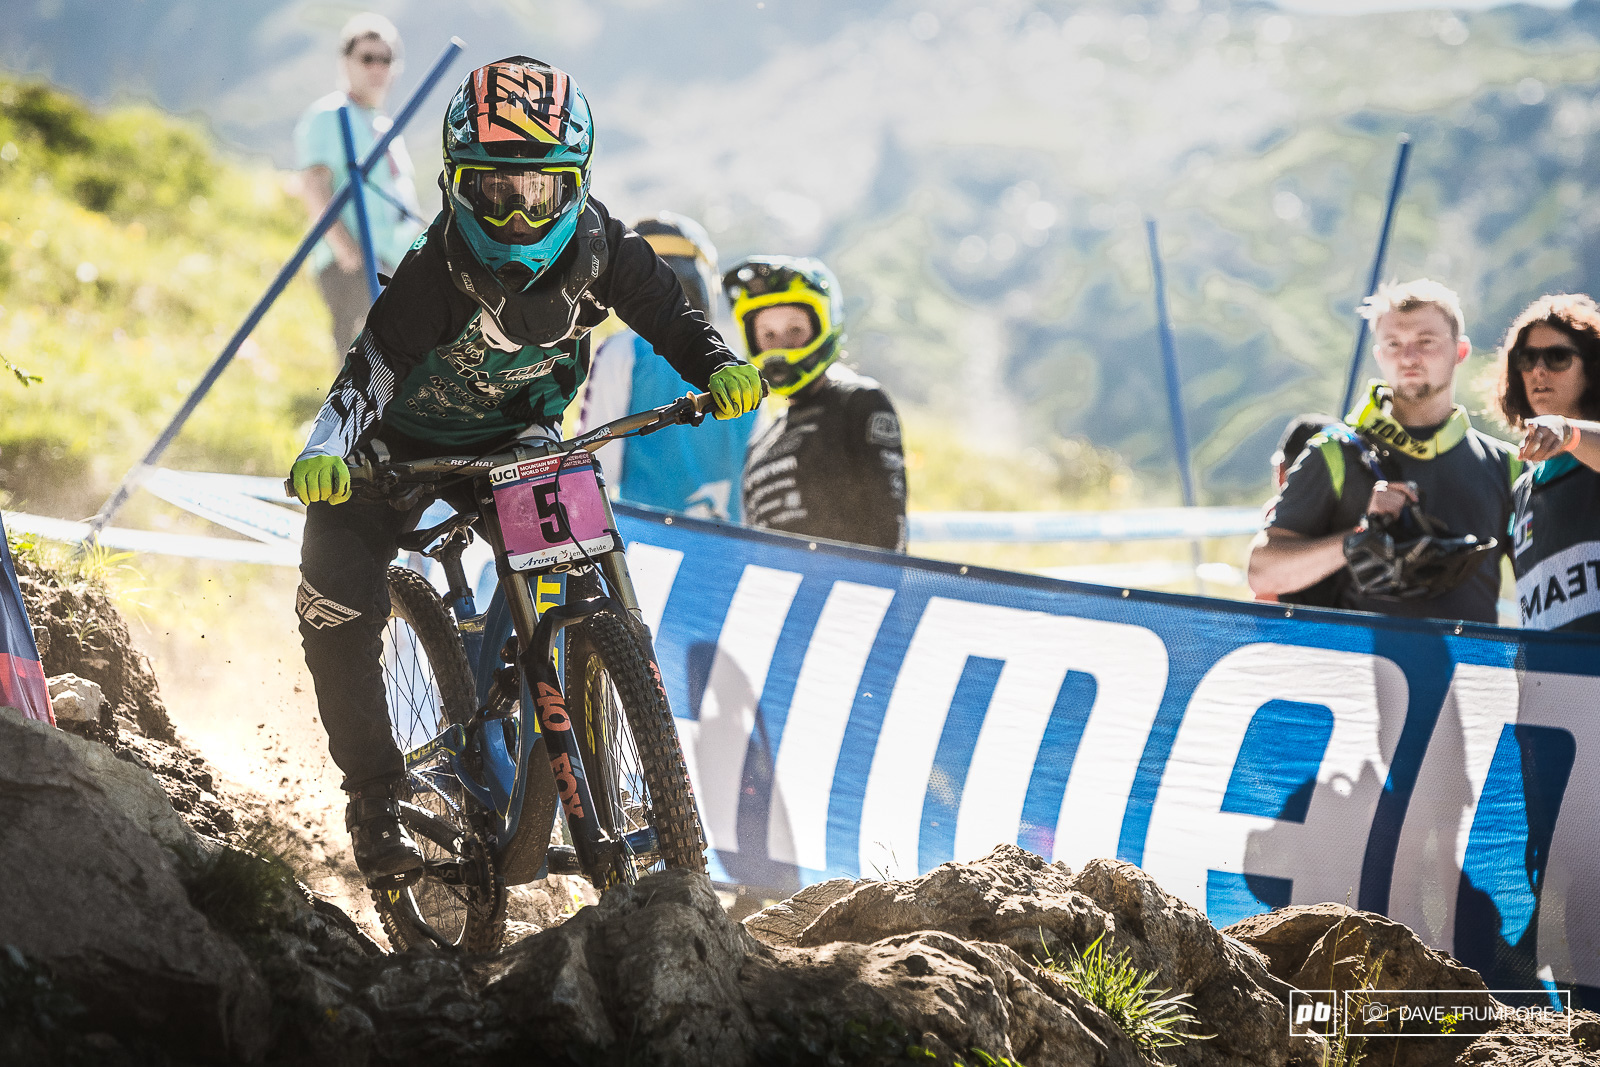 Emilie Siegenthaler was on home turf this weekend and racing in front of friends and family. All those extra cheers from the Swiss fans pushed her all the way down to take her best result of the season in 3rd.